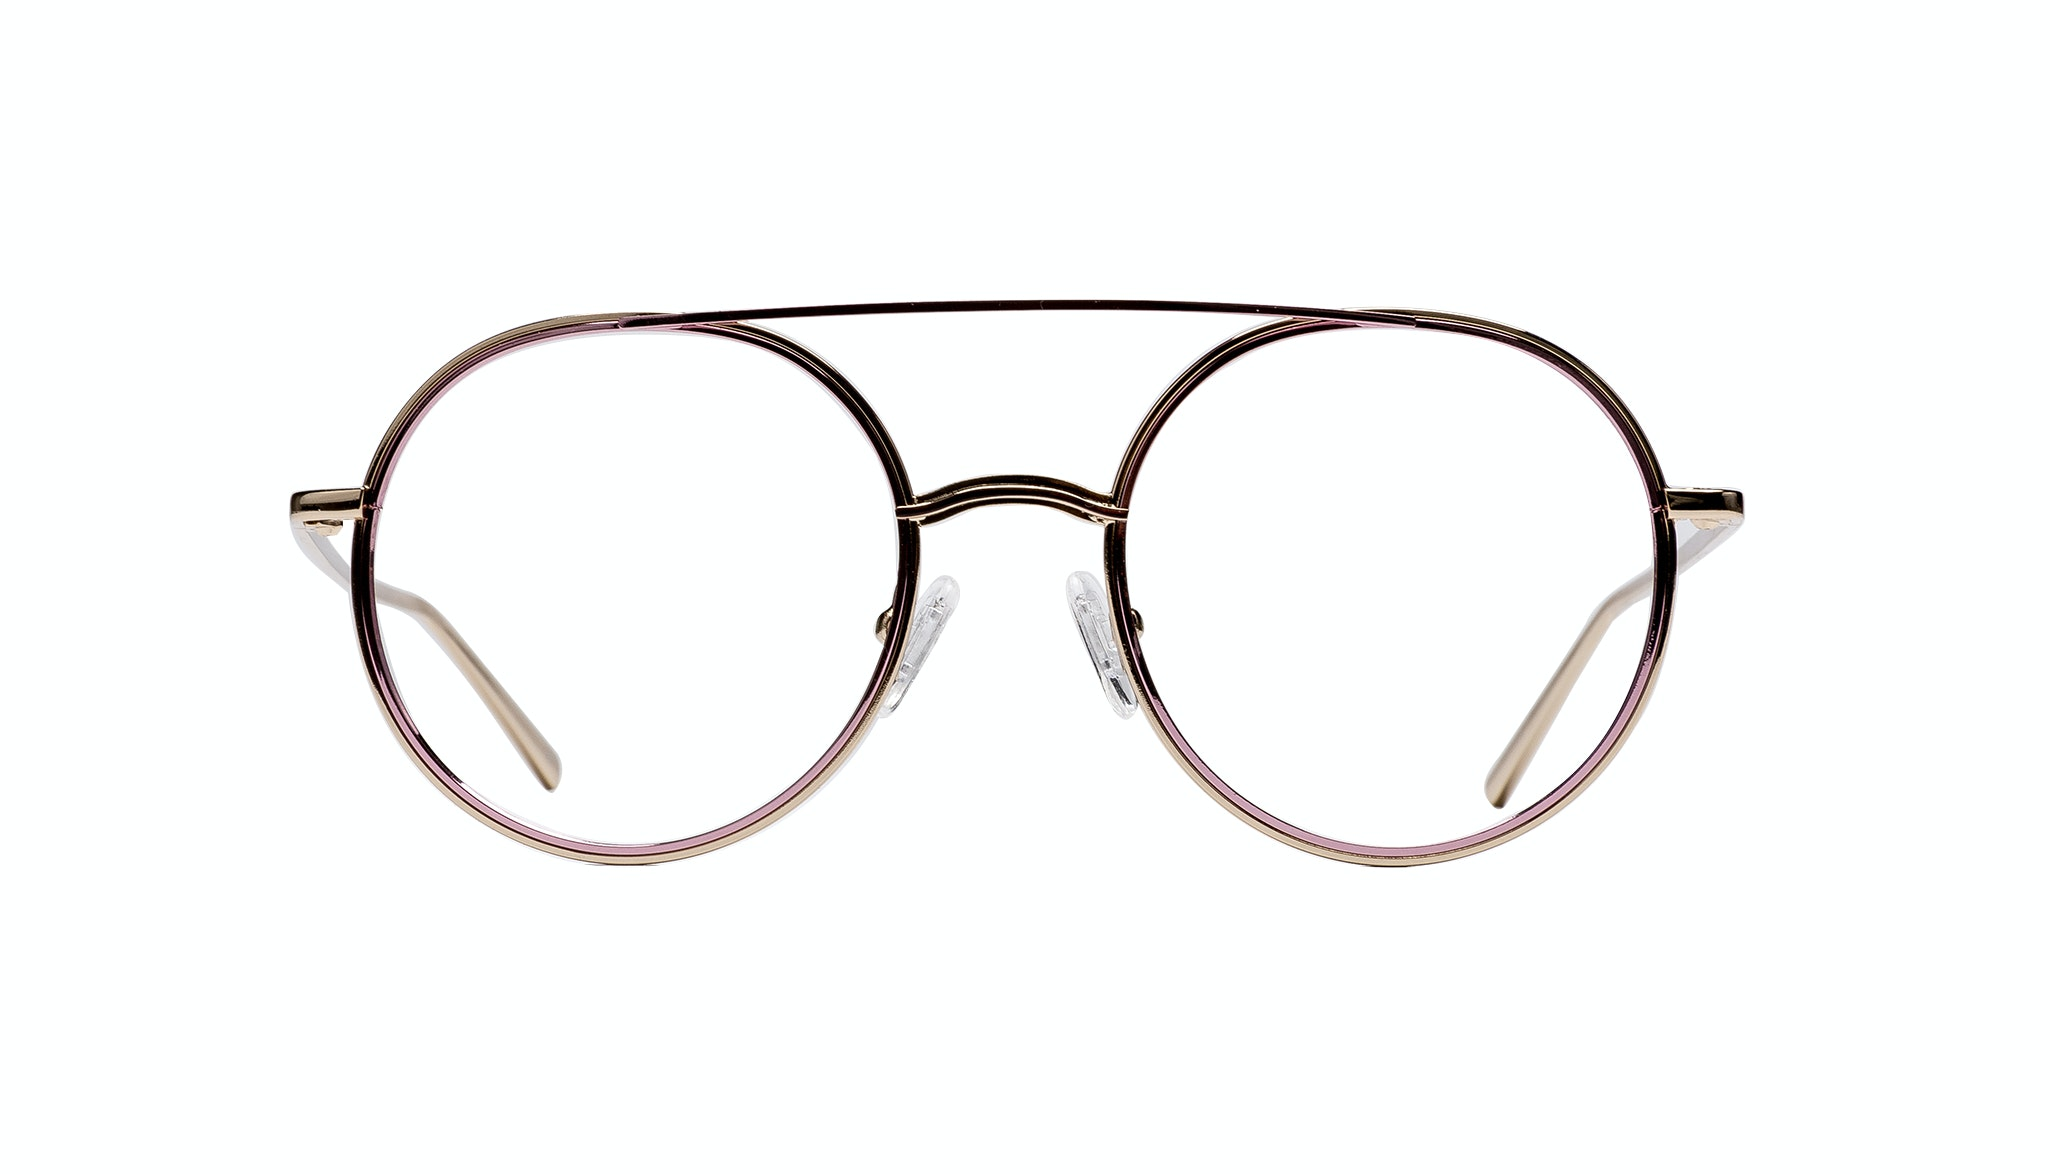 Affordable Fashion Glasses Aviator Eyeglasses Women Scarborough 2 Chains Front